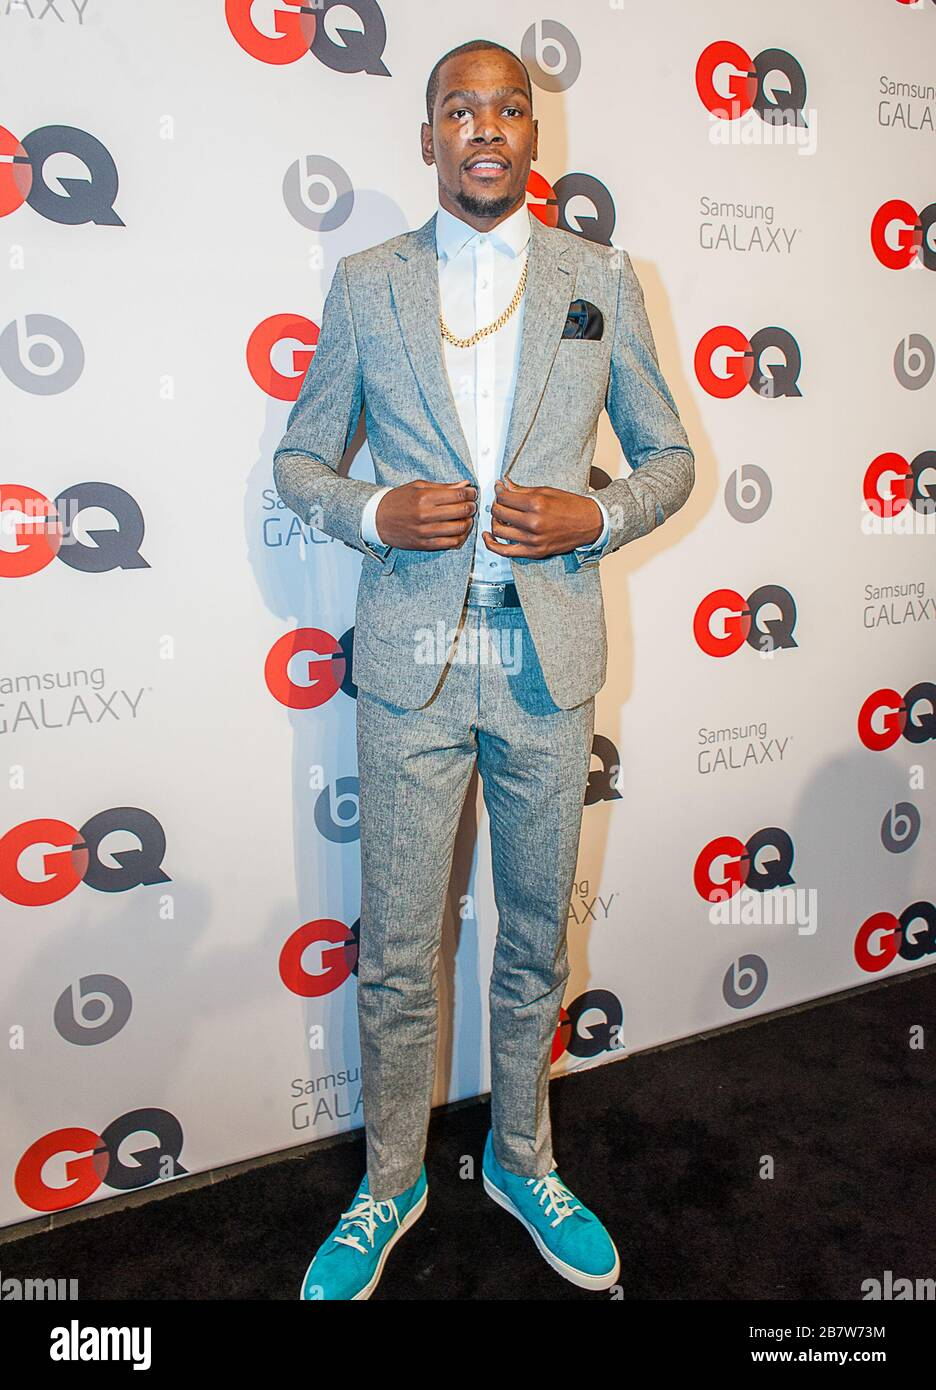 ***FILE PHOTO*** Kevin Durant Among Four Nets NBA Players With Coronavirus. NEW ORLEANS, LA - FEBRUARY 15: NBA Player Kevin Durant (Oklahoma City Thunders) posing at the GQ & Lebron James NBA All Star Style party sponsored by Samsung Galaxy on Saturday, February 15, 2014, at the Ogden Museum of Southern Art in New Orleans, Louisiana with live jam session from grammy Award-winning Artist The Roots. Photo Credit:RTNEscanelle/MediaPunch Stock Photo